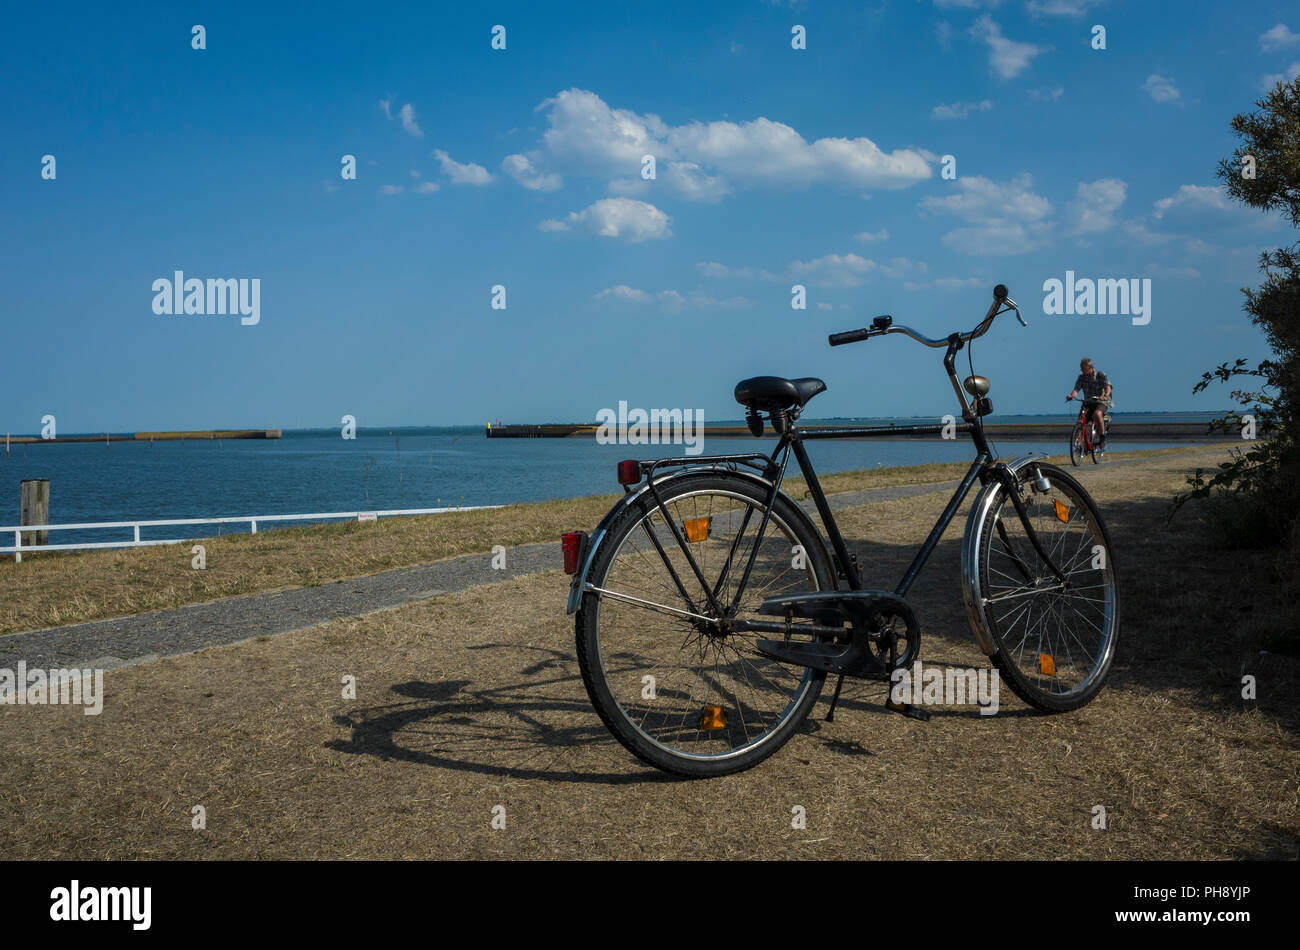 Marina Langeoog bei Niedrigwasser. Deutschland.  Traditional German style bicycle parked in front of the harbour.  The old harbour walls that were built in World War 2, WWII, can be seen on the horizon leading out to the sea.  It's a sunny day casting strong shadows from the bicycle and hedgerow with only a few white puffy clouds in the clear sky.  A tourist is cycling into the scene along the narrow harbour road.  The grass verges have dried out and lost their colour in the 2018 heat wave.  The deep blue sea contrasts the warm blue sky. - Stock Image